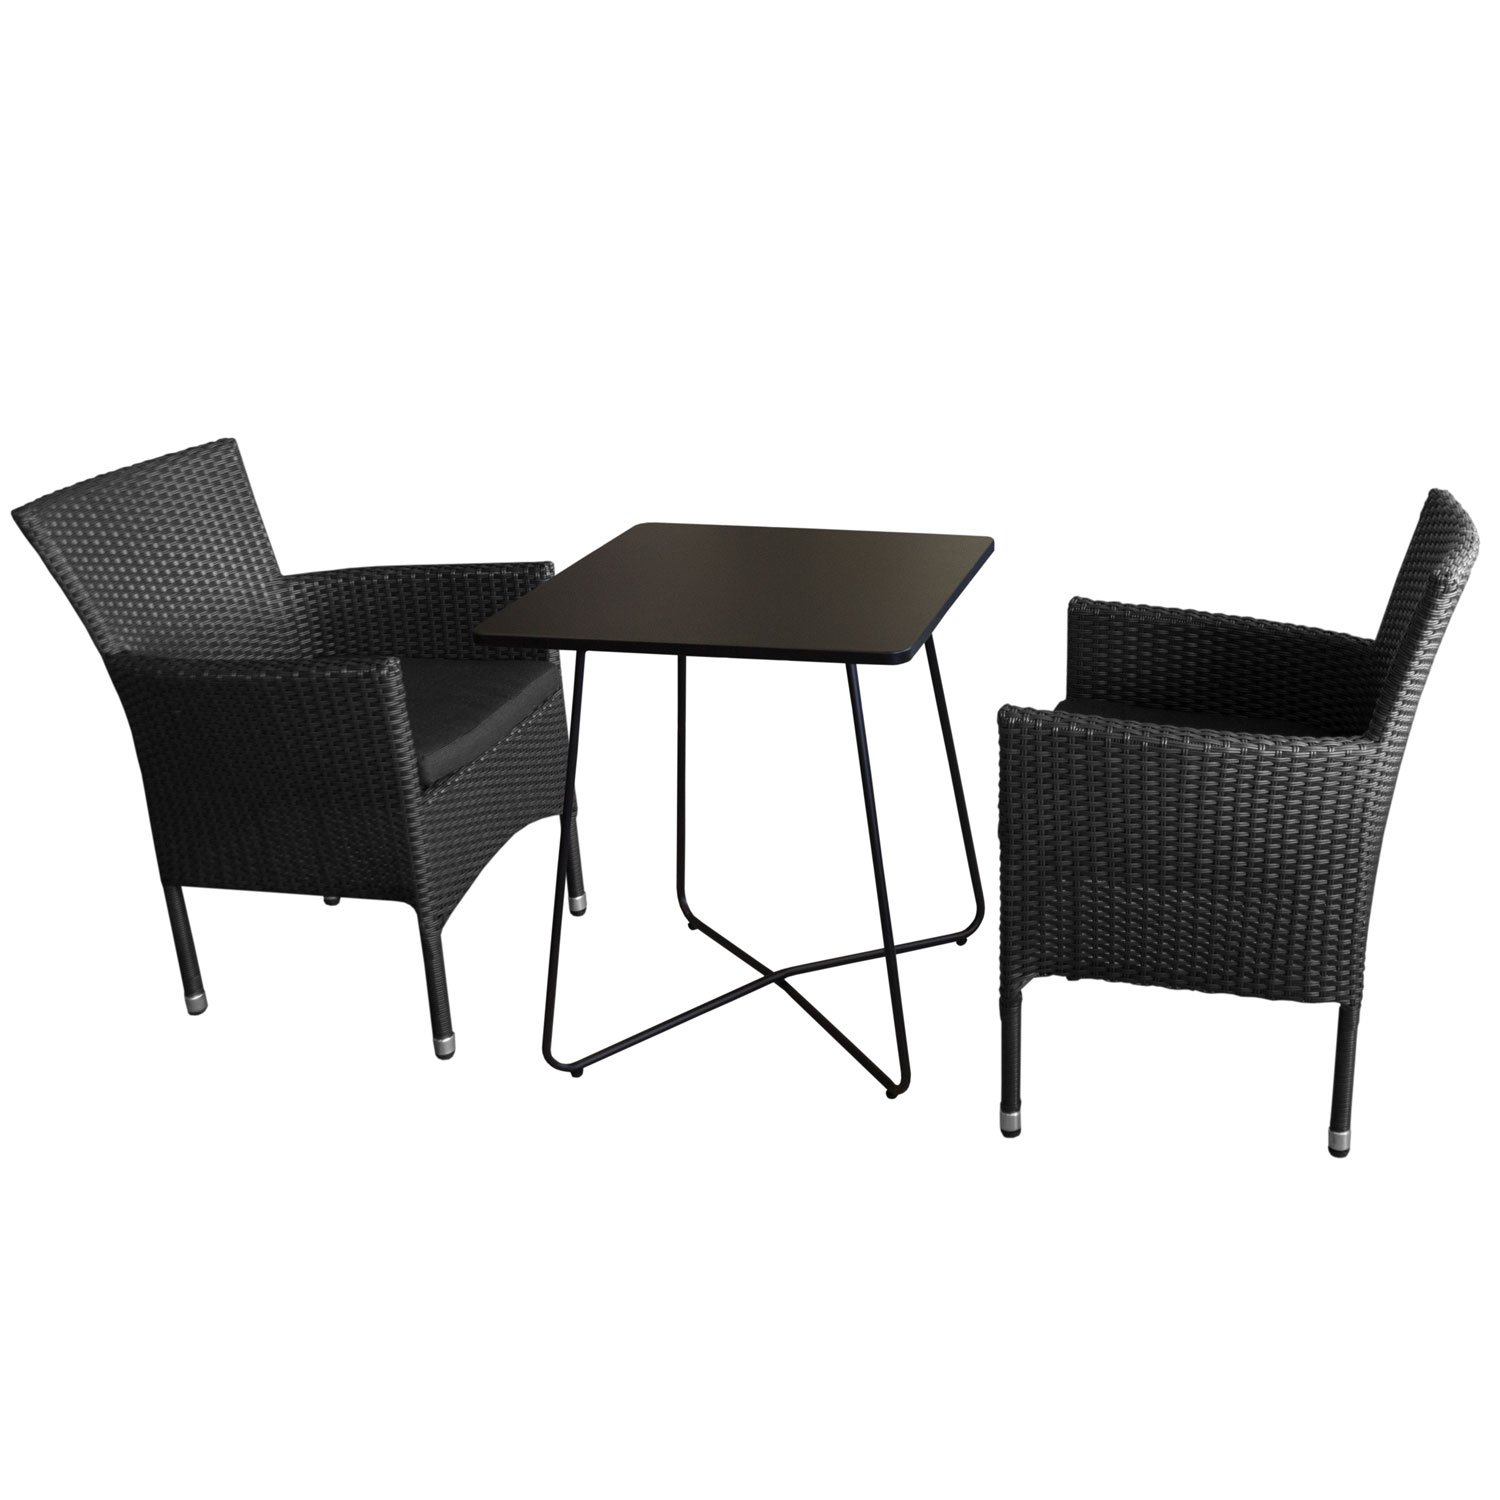 3tlg balkonm bel set bistrotisch metall 60x60cm schwarz 2x rattansessel stapelbar inkl. Black Bedroom Furniture Sets. Home Design Ideas